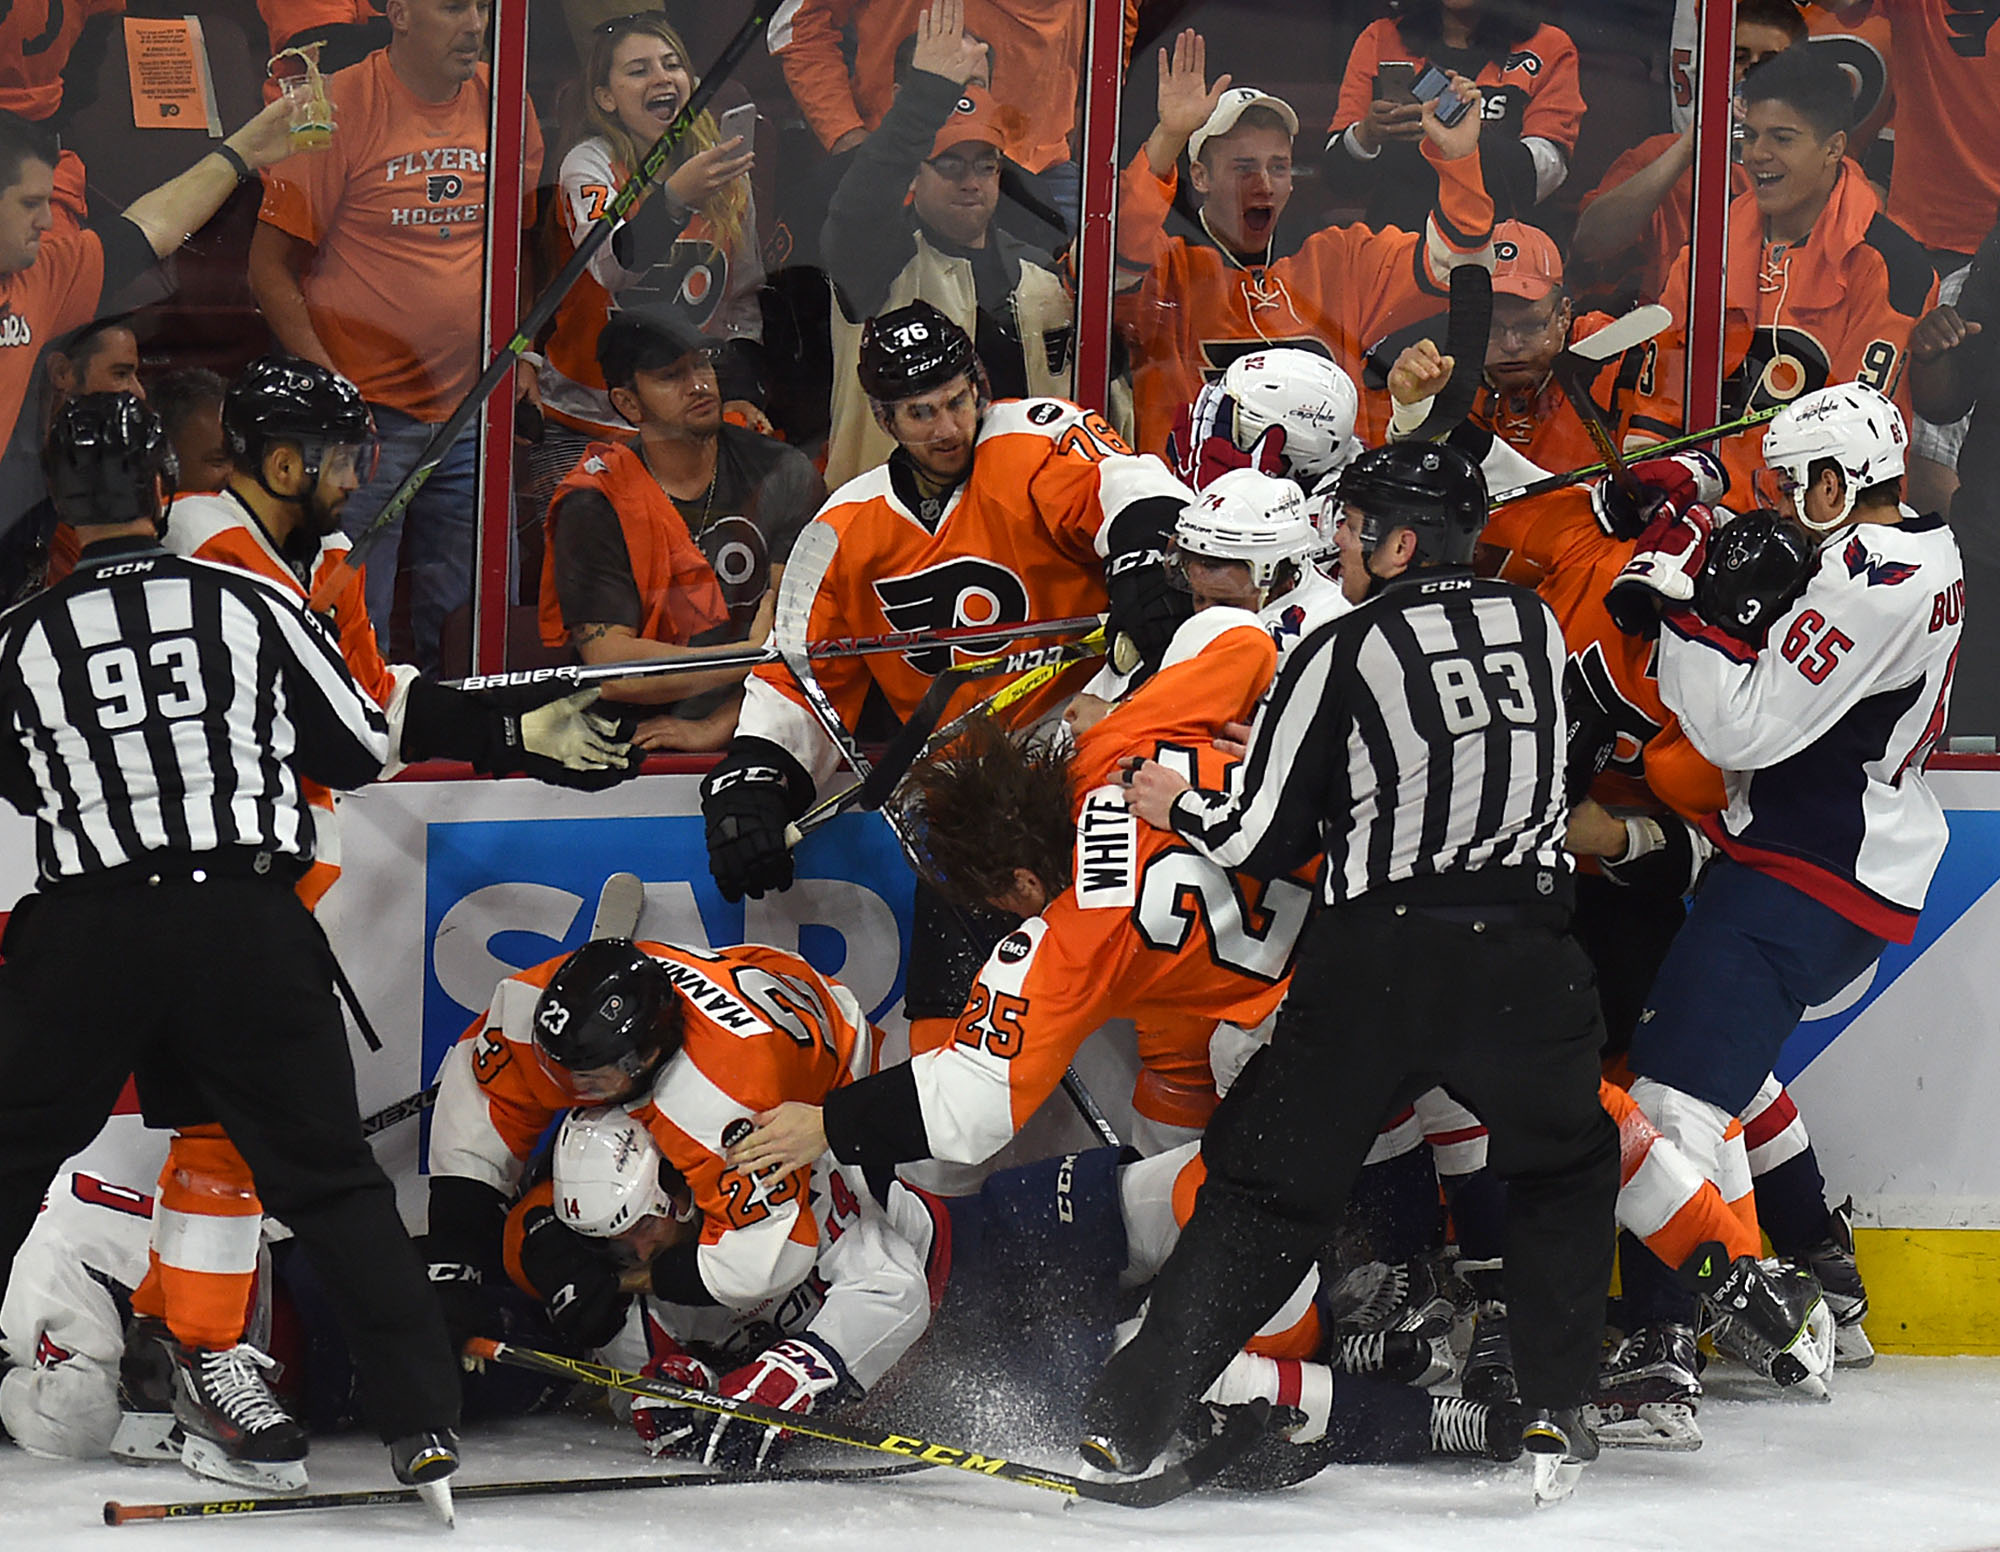 Flyers player Ryan White (25) falls down in the middle of a huge pile of fighting players from both teams during their playoff game against the Capitals at The Wells Fargo Center on Monday, April 18, 2016. The Flyers lost 6-1, but went on to win two more games against the Caps in their seven-game series.